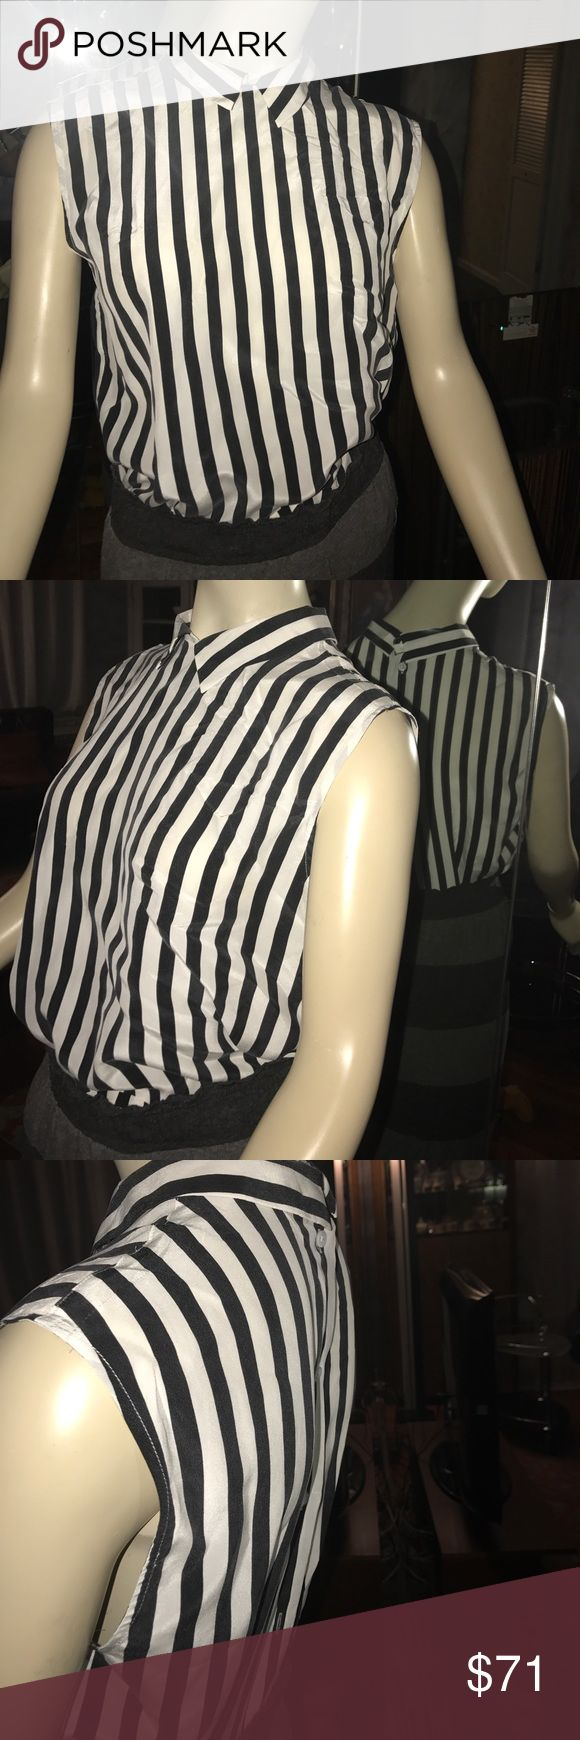 Equipment silk black white stripe button down back Like new condition true to size  buttons in place smooth silk material great fit button down back Equipment Tops Blouses